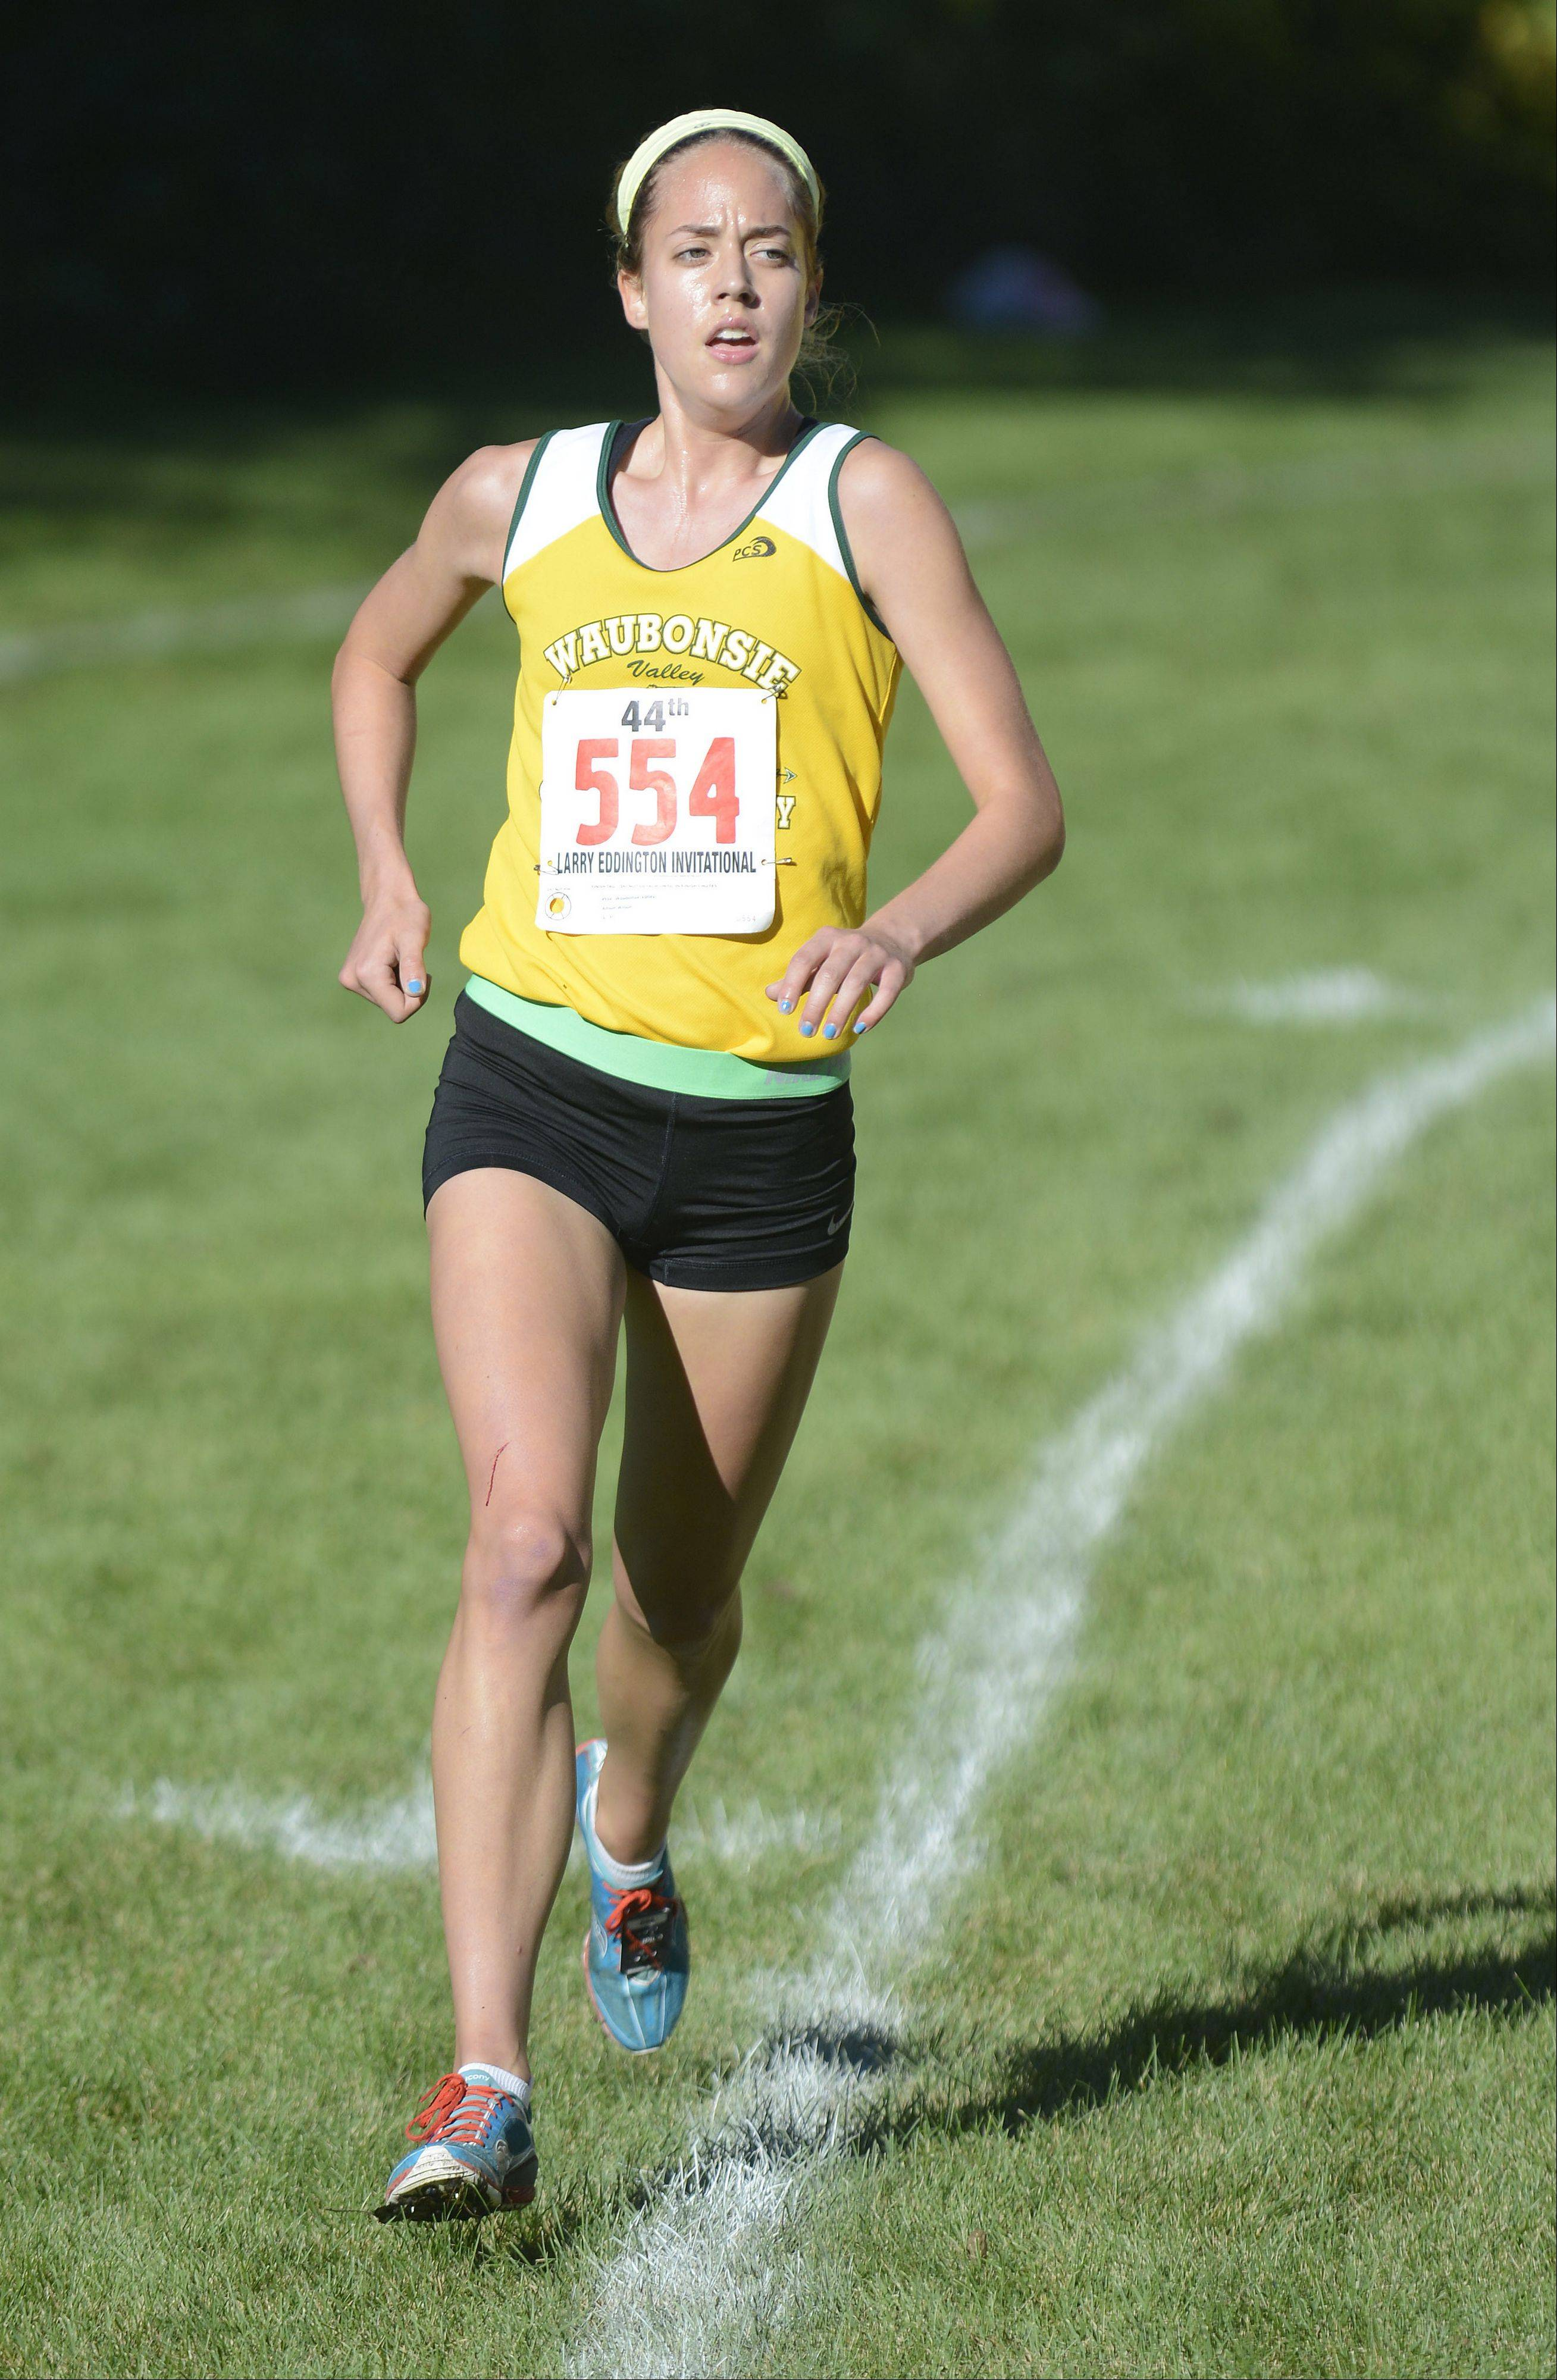 Waubonsie Valley's Allison Wilson nears the finish line and takes eleventh place, first for her team, at the Kaneland Invitational cross country meet in Elburn on Saturday, September 21.